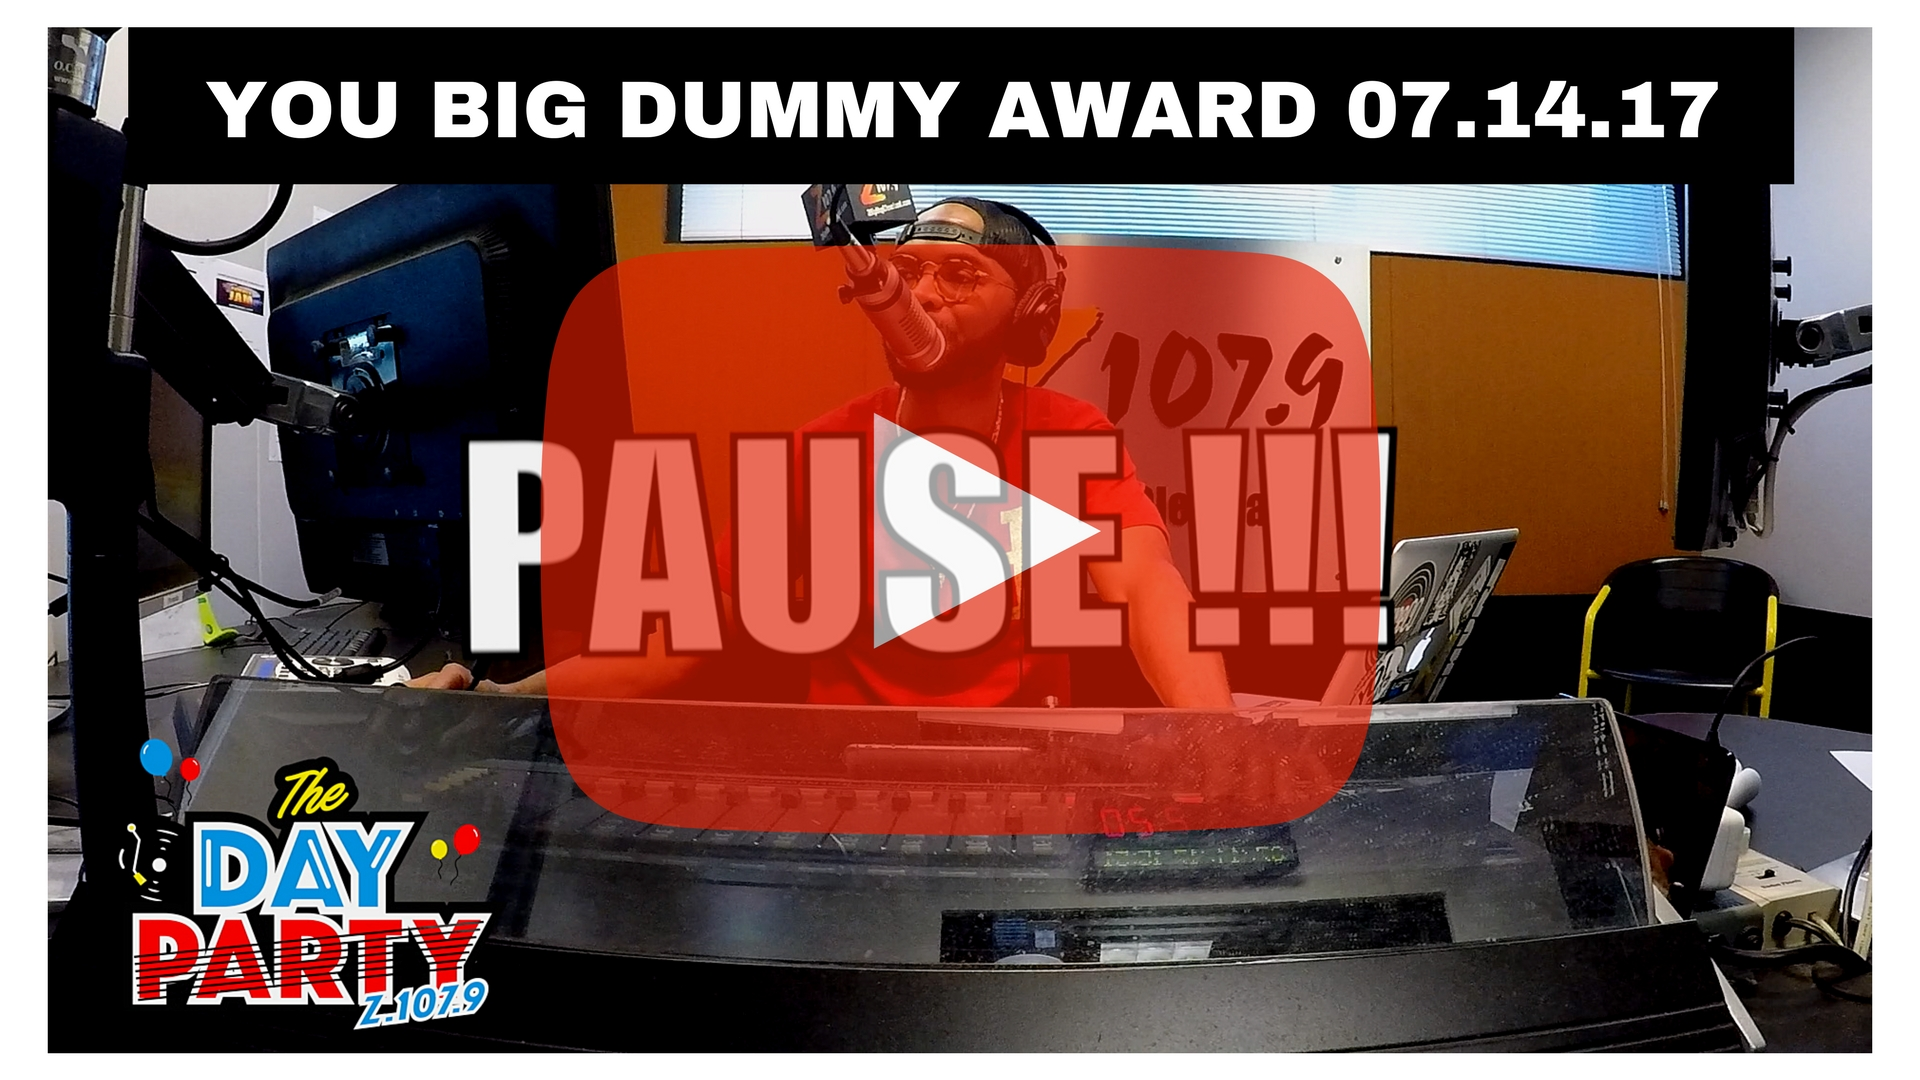 YOU BIG DUMMY AWARD 07.14.17 CUSTOM THUMB